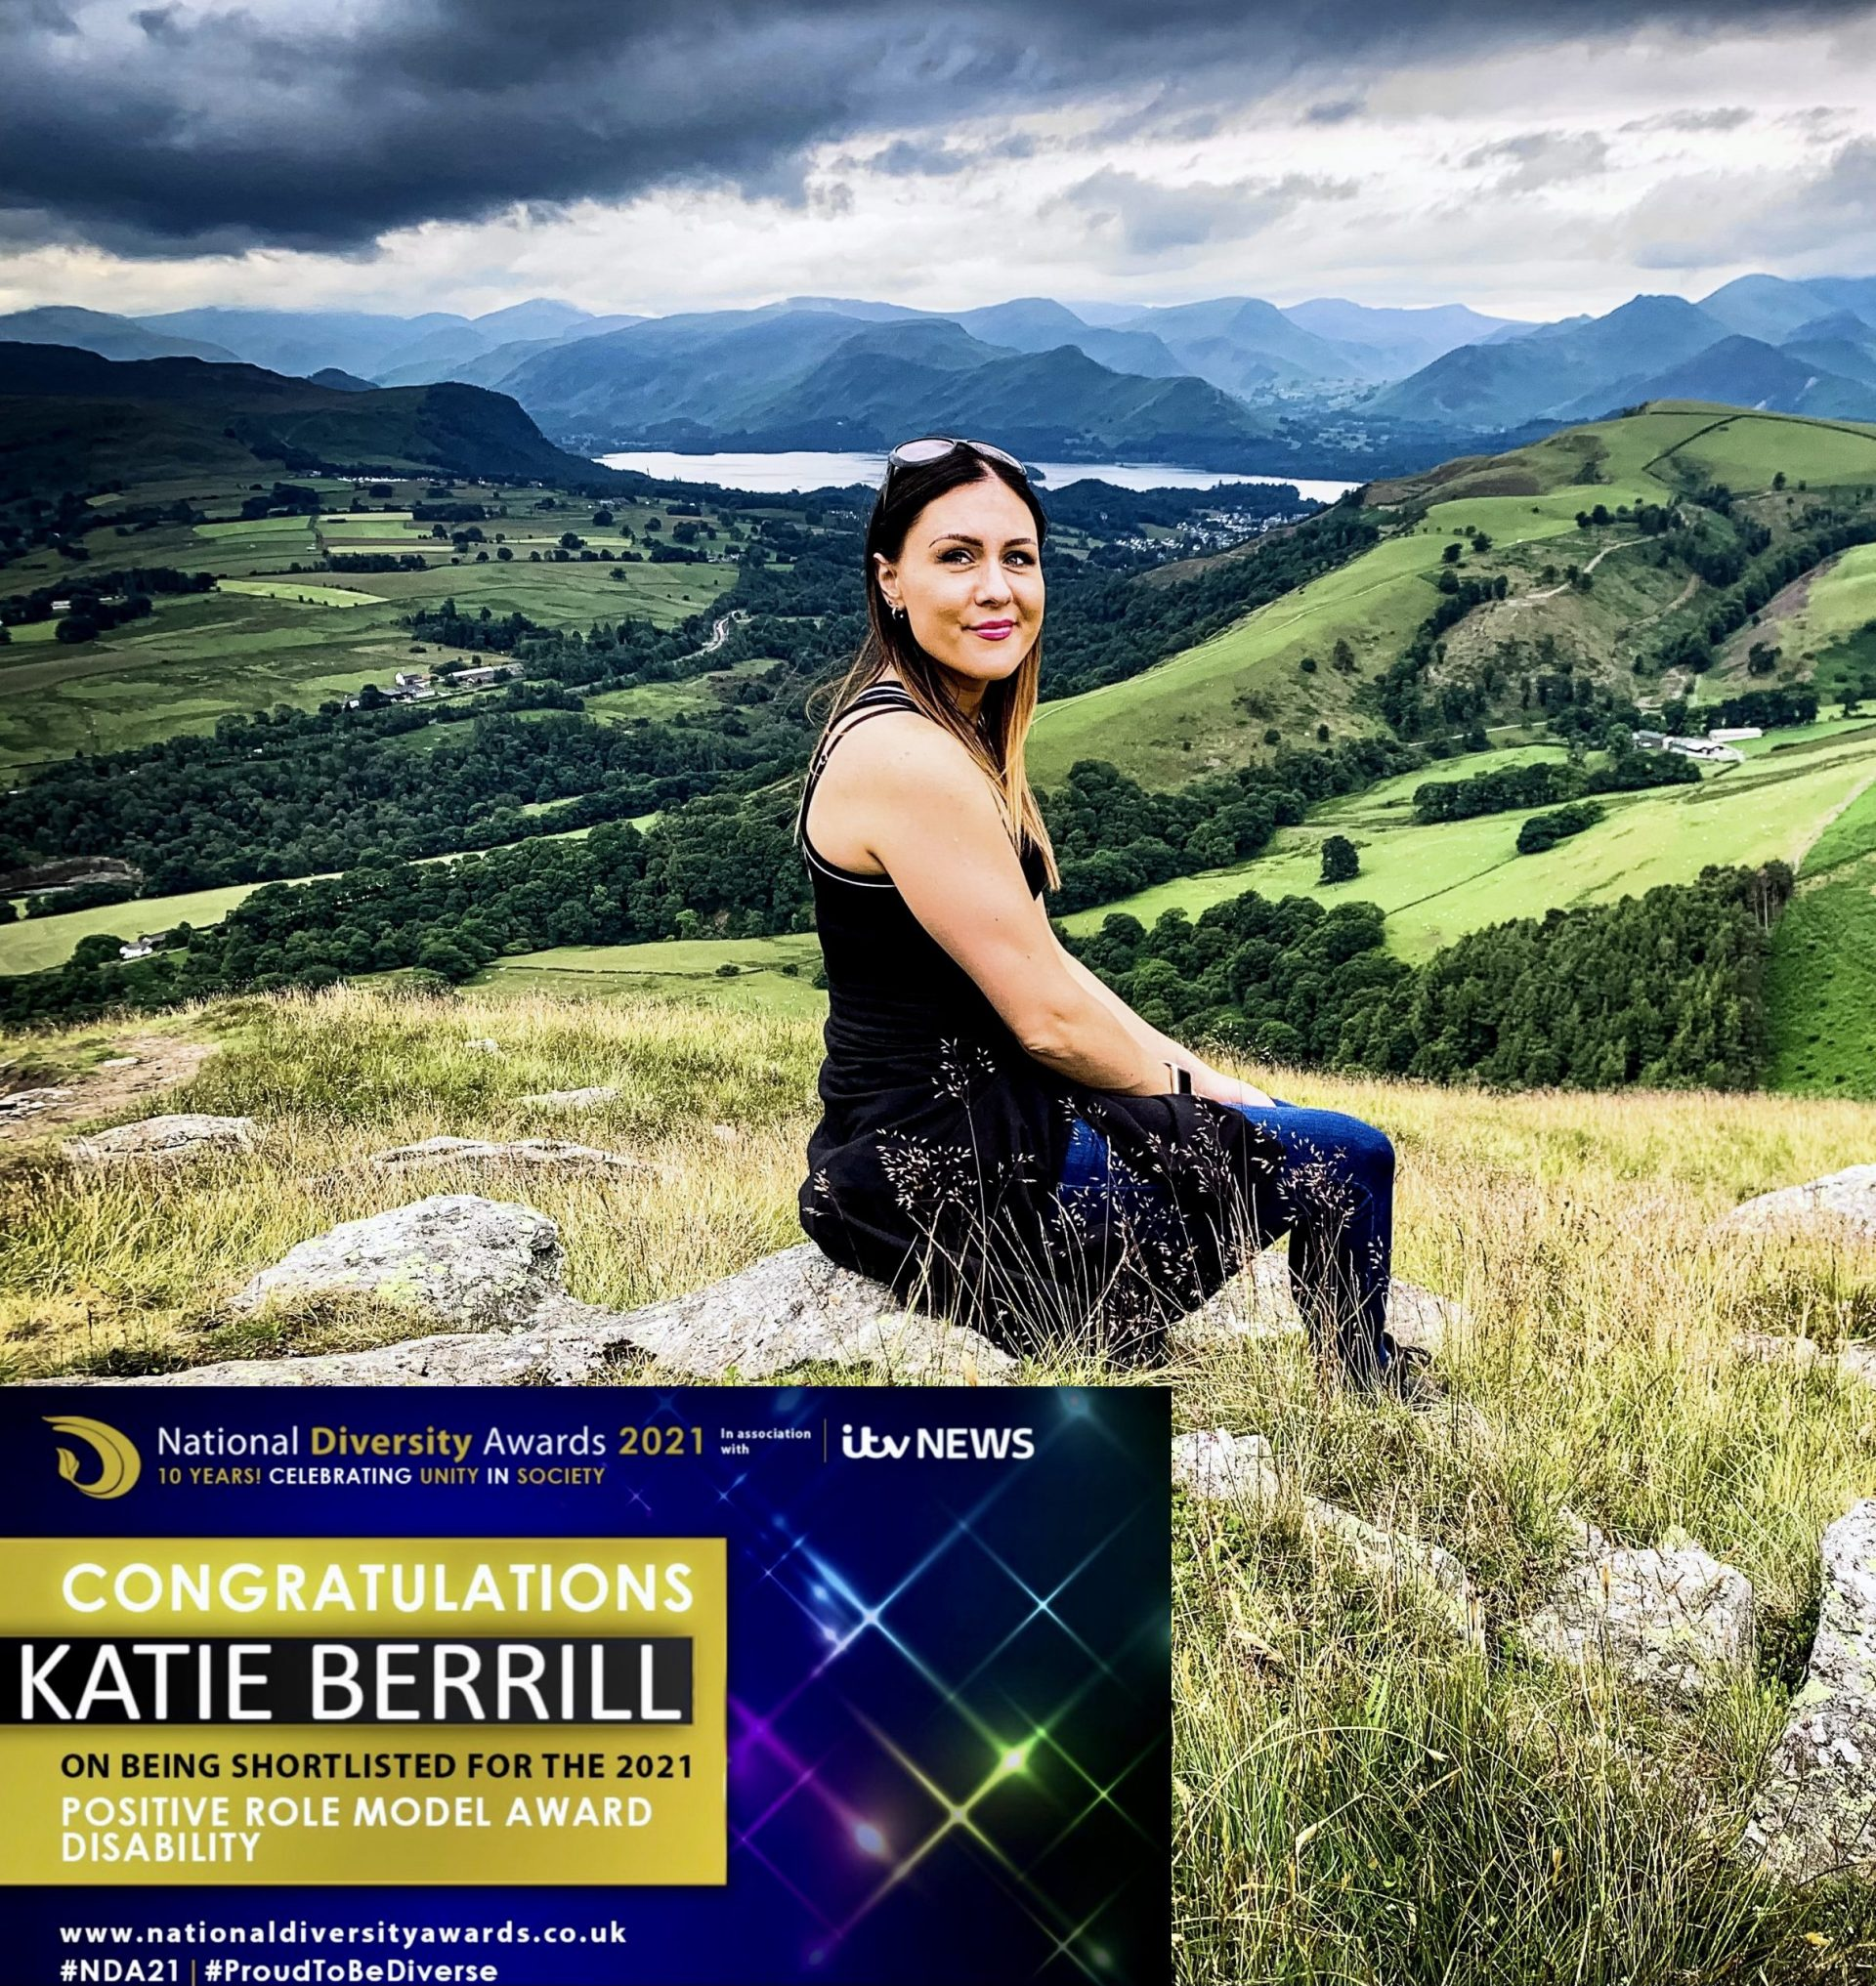 I, a white woman, am sat on a rock looking back towards the camera and it's the Cumbrian hills around me. I have my ombre hair down and am smiling at the camera. The weather is overcast but warm end I am in Summer clothes. There is an image in the bottom of the picture that shows my diversity shortlisted banner